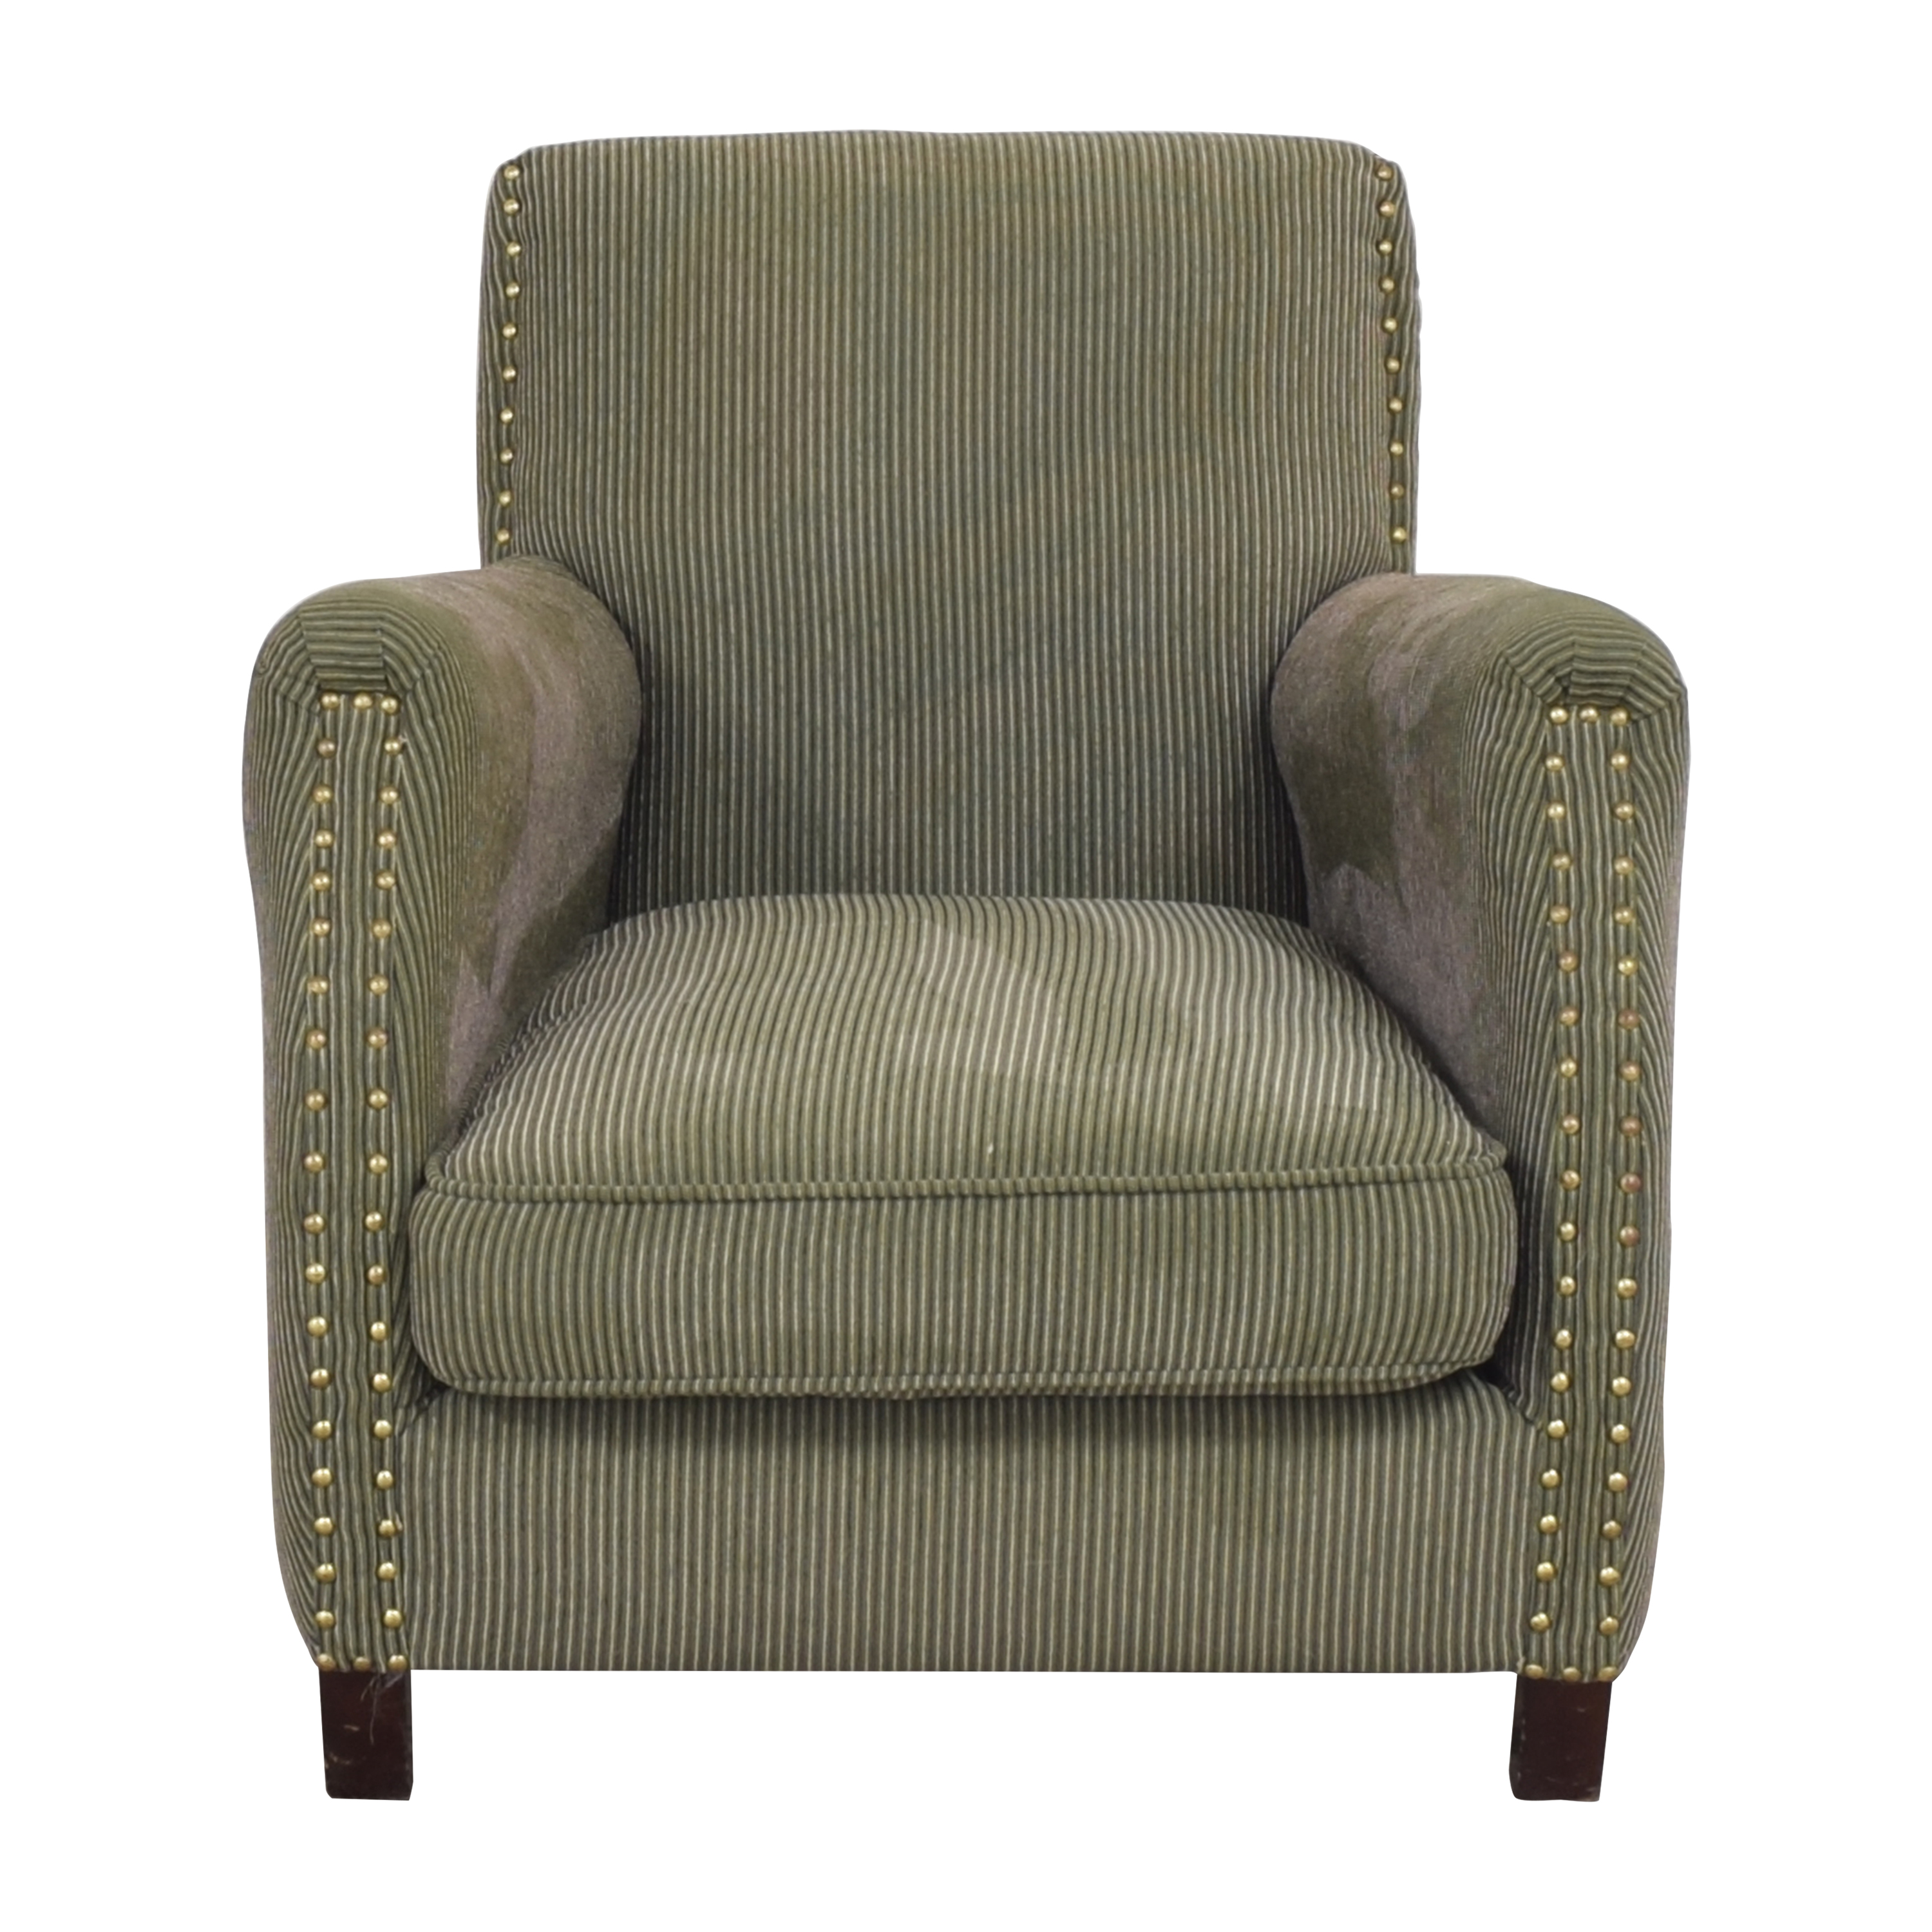 Ellis Home Furnishings Ellis Home Furnishing Striped Accent Chair nyc